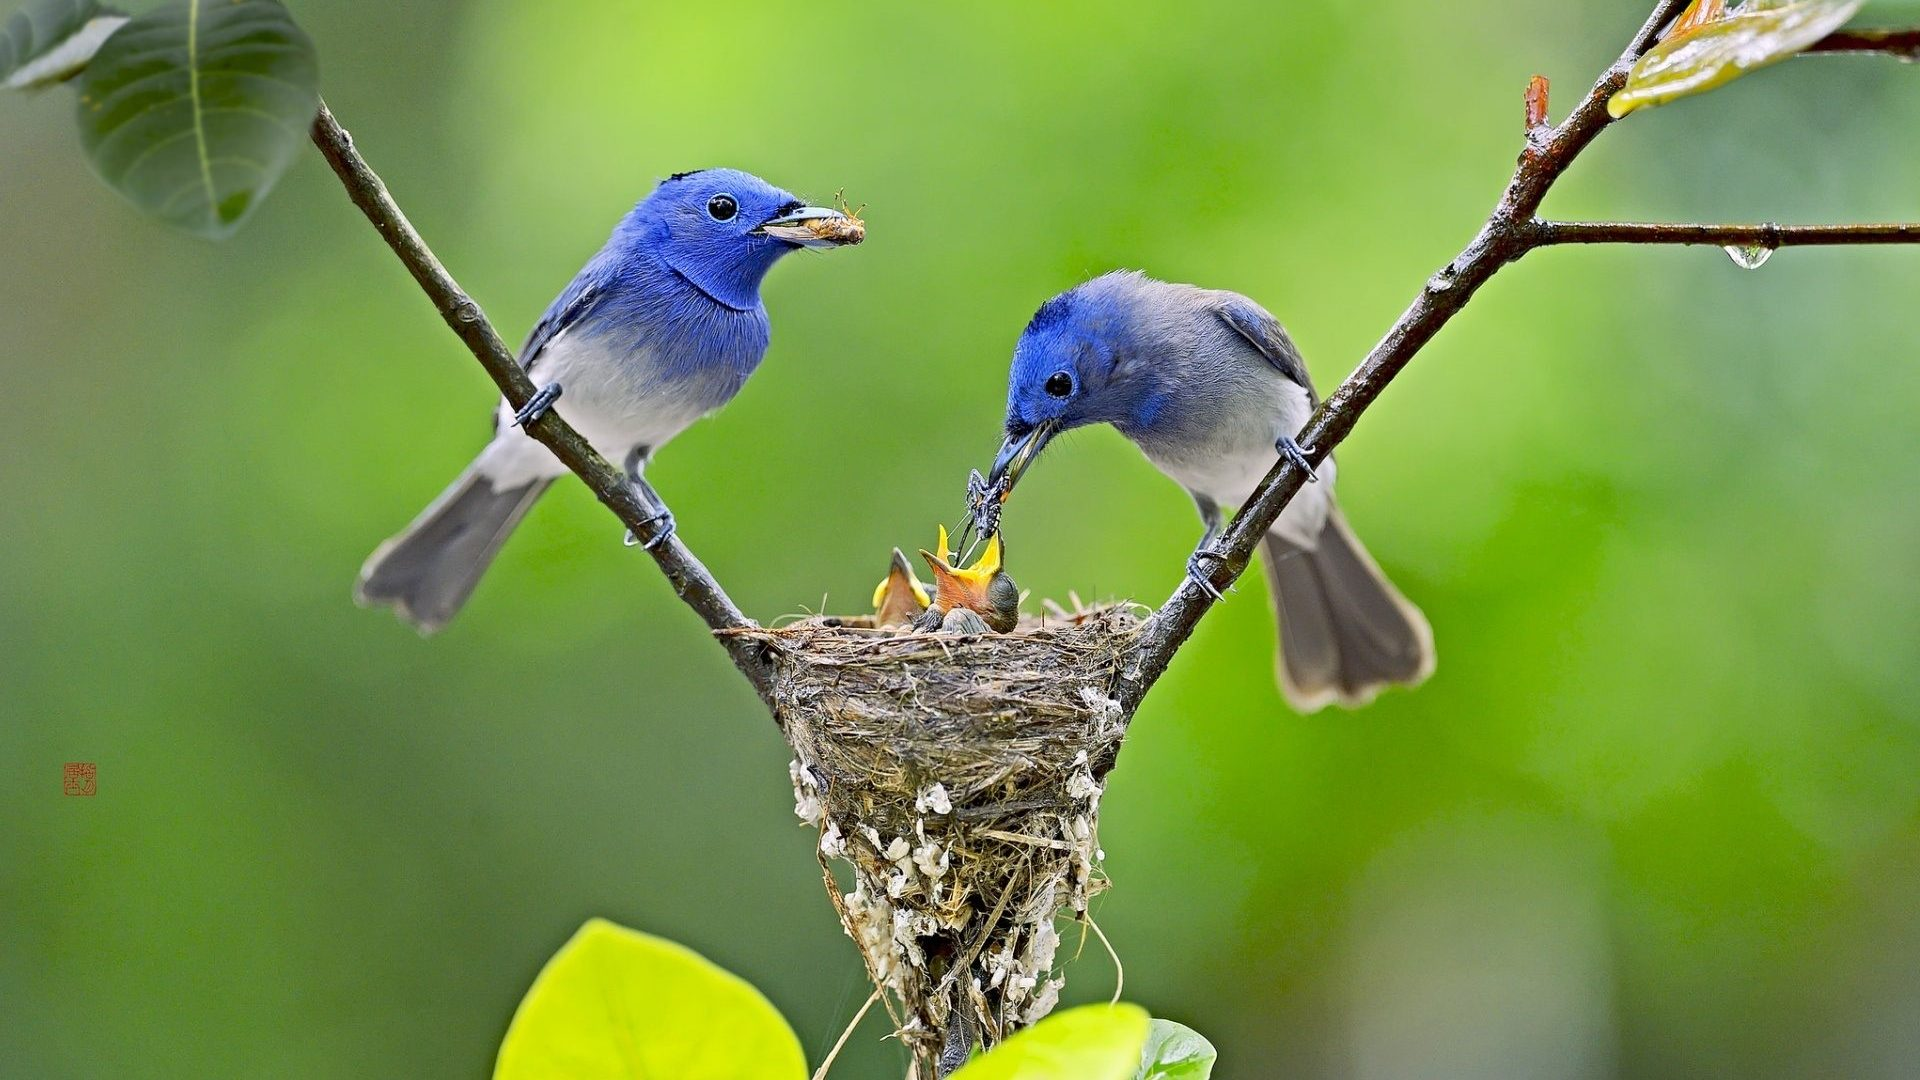 birds-nest-of-little-birds-1920x1080-Need-iPhone-S-Plus-Background-for-wallpaper-wp3603346